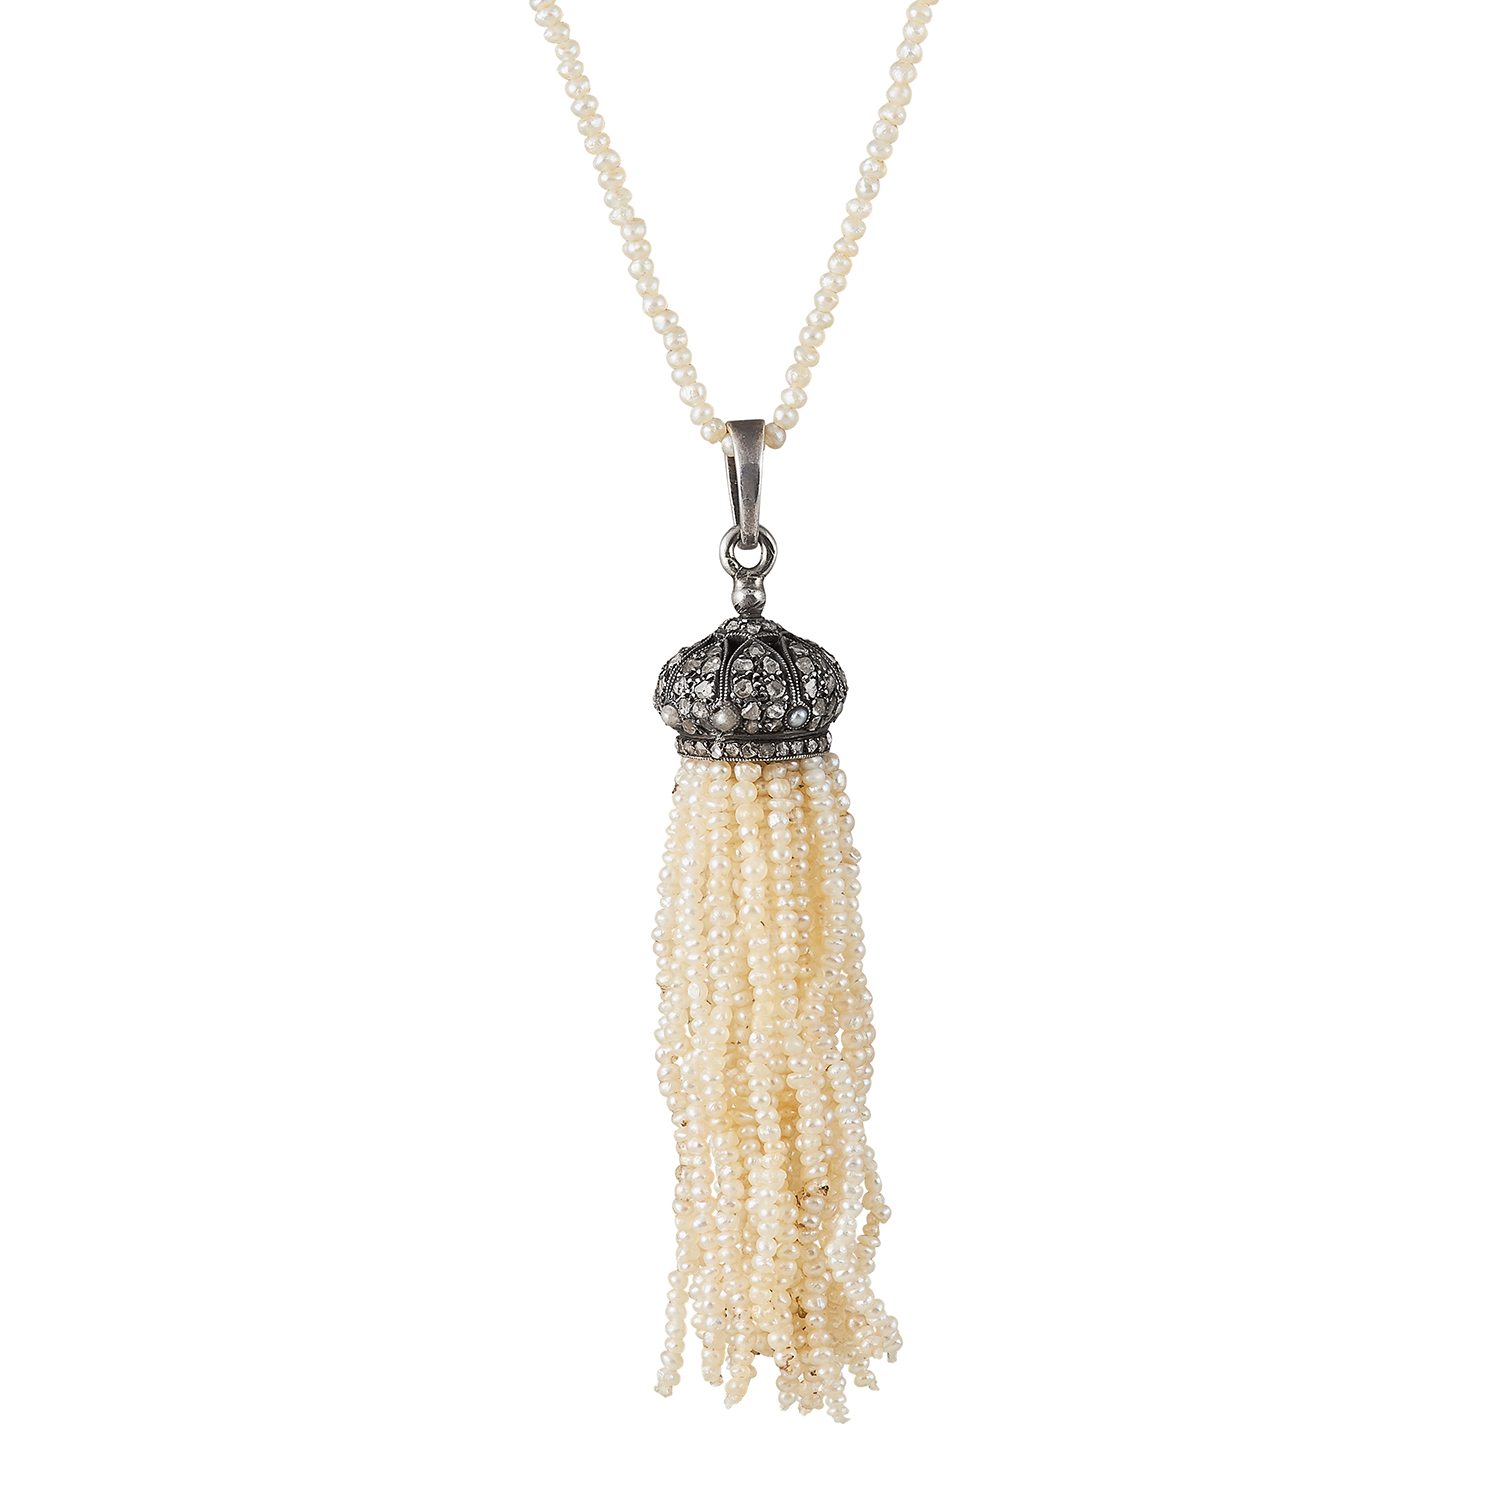 ANTIQUE NATURAL PEARL, DIAMOND AND SAPPHIRE TASSEL NECKLACE AND PENDANT comprising of a natural - Bild 2 aus 2